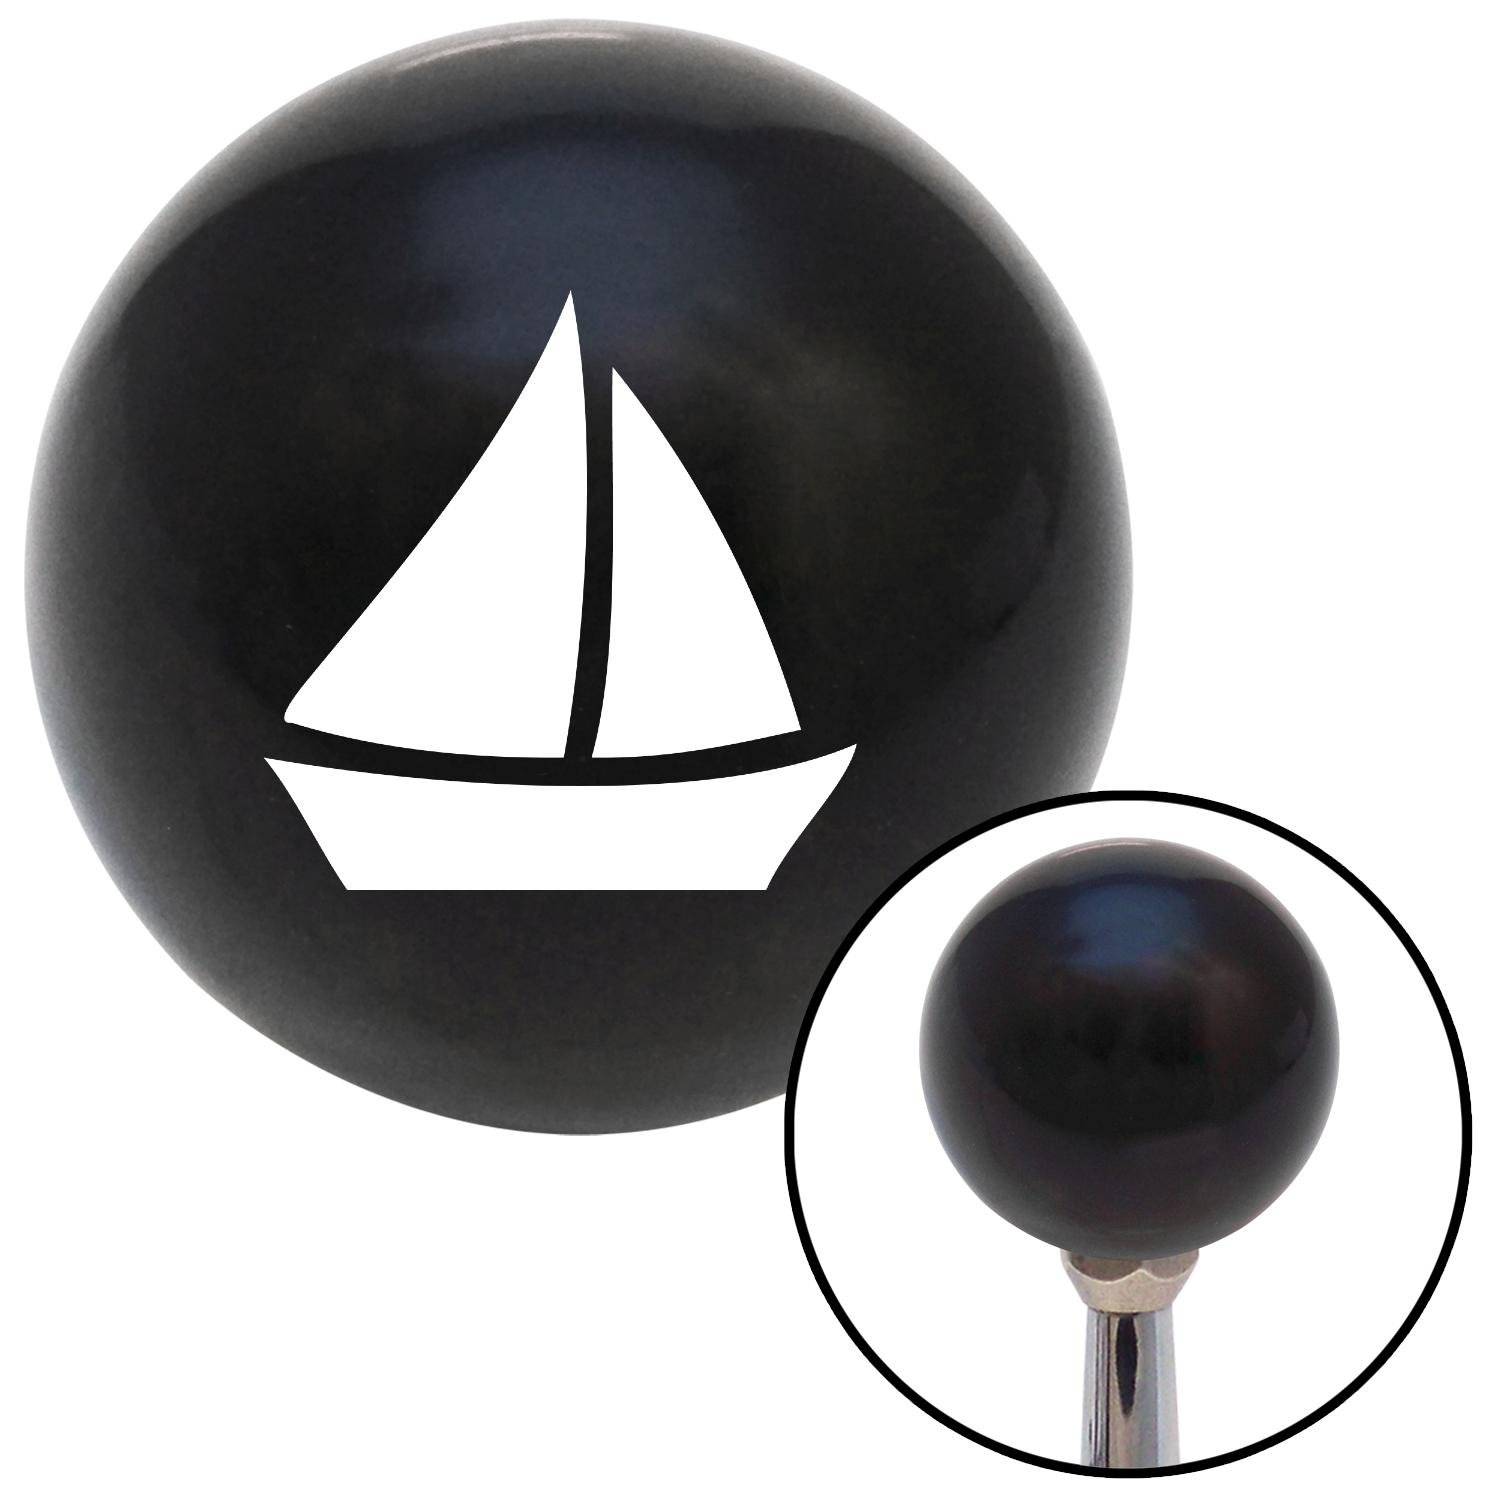 White Sail Boat #2 American Shifter 105210 Black Shift Knob with M16 x 1.5 Insert